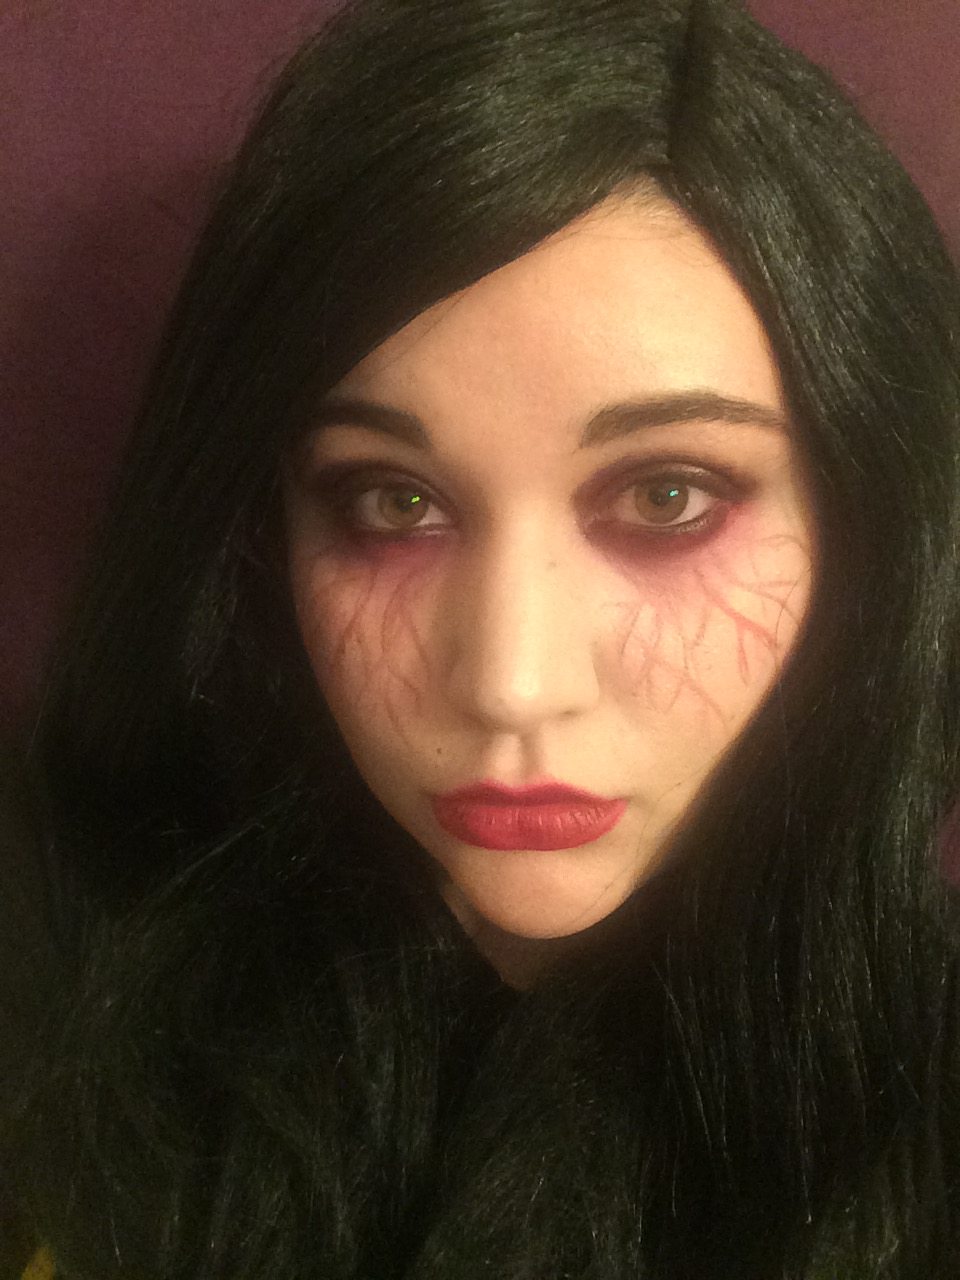 Vampire Makeup Youtube: Storybook Apothecary